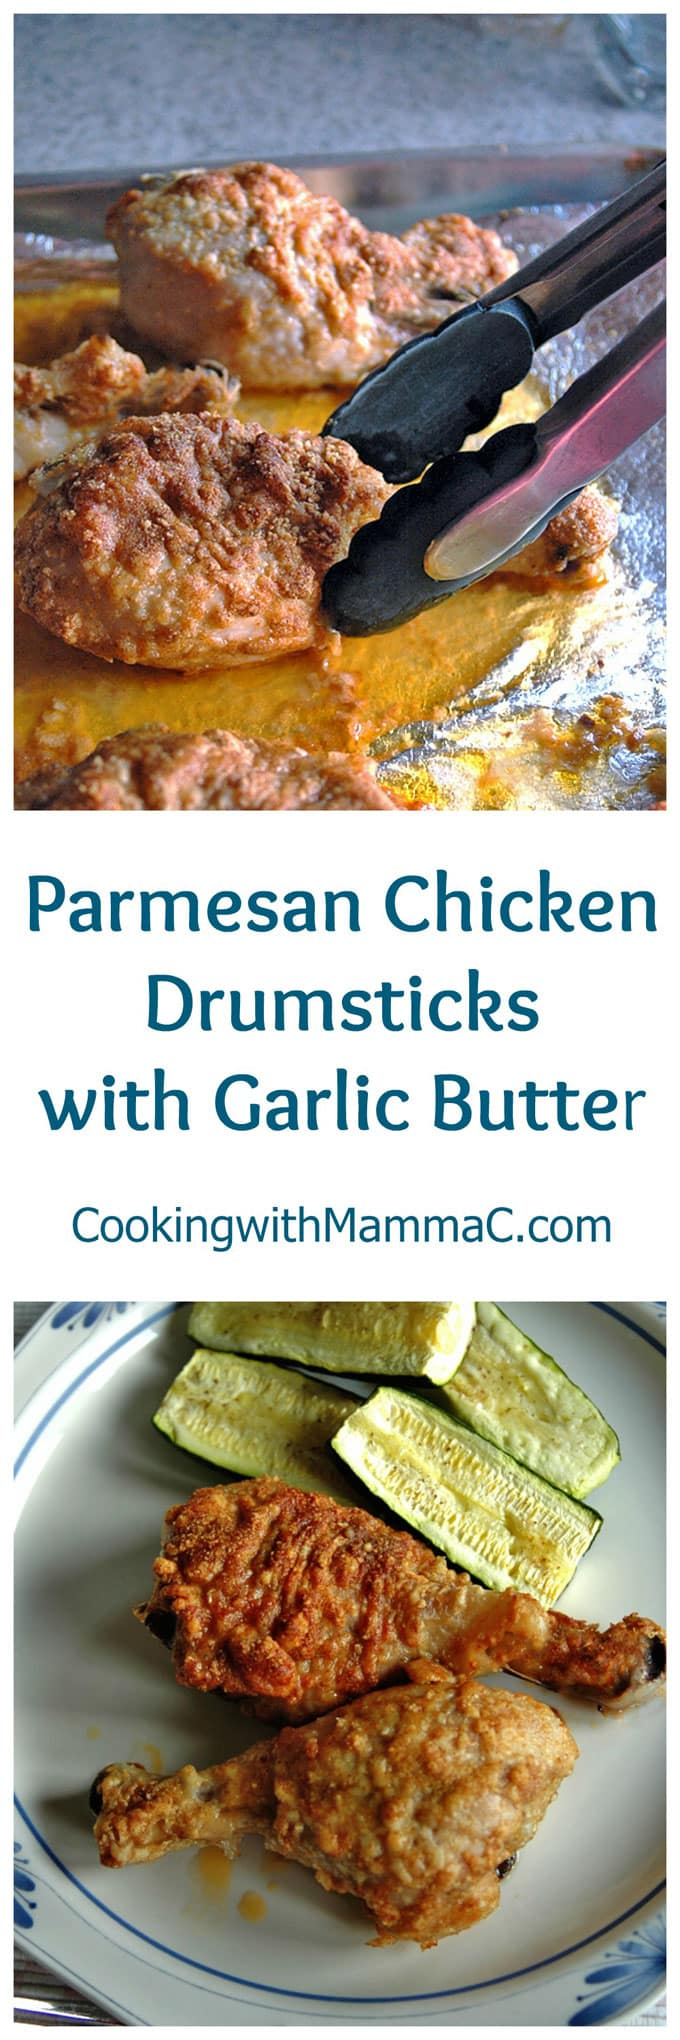 Parmesan Chicken Drumsticks with Garlic Butter - a family favorite that's gluten free! Serve with bread to soak up the delicious garlic butter.